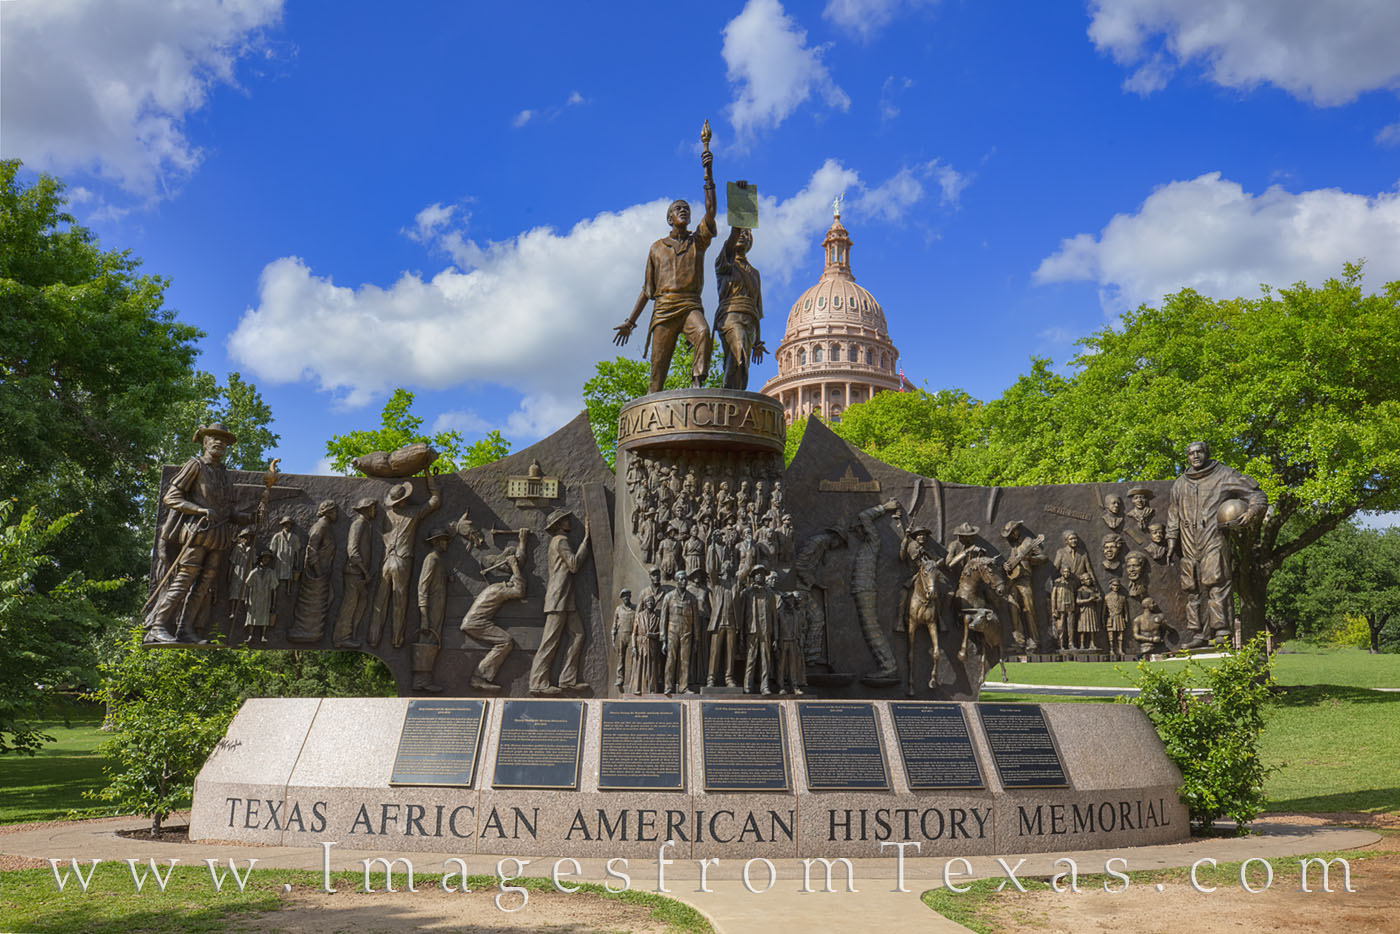 African American Memorial, Monument, state capitol, juneteenth, texas african american history memorial, photo